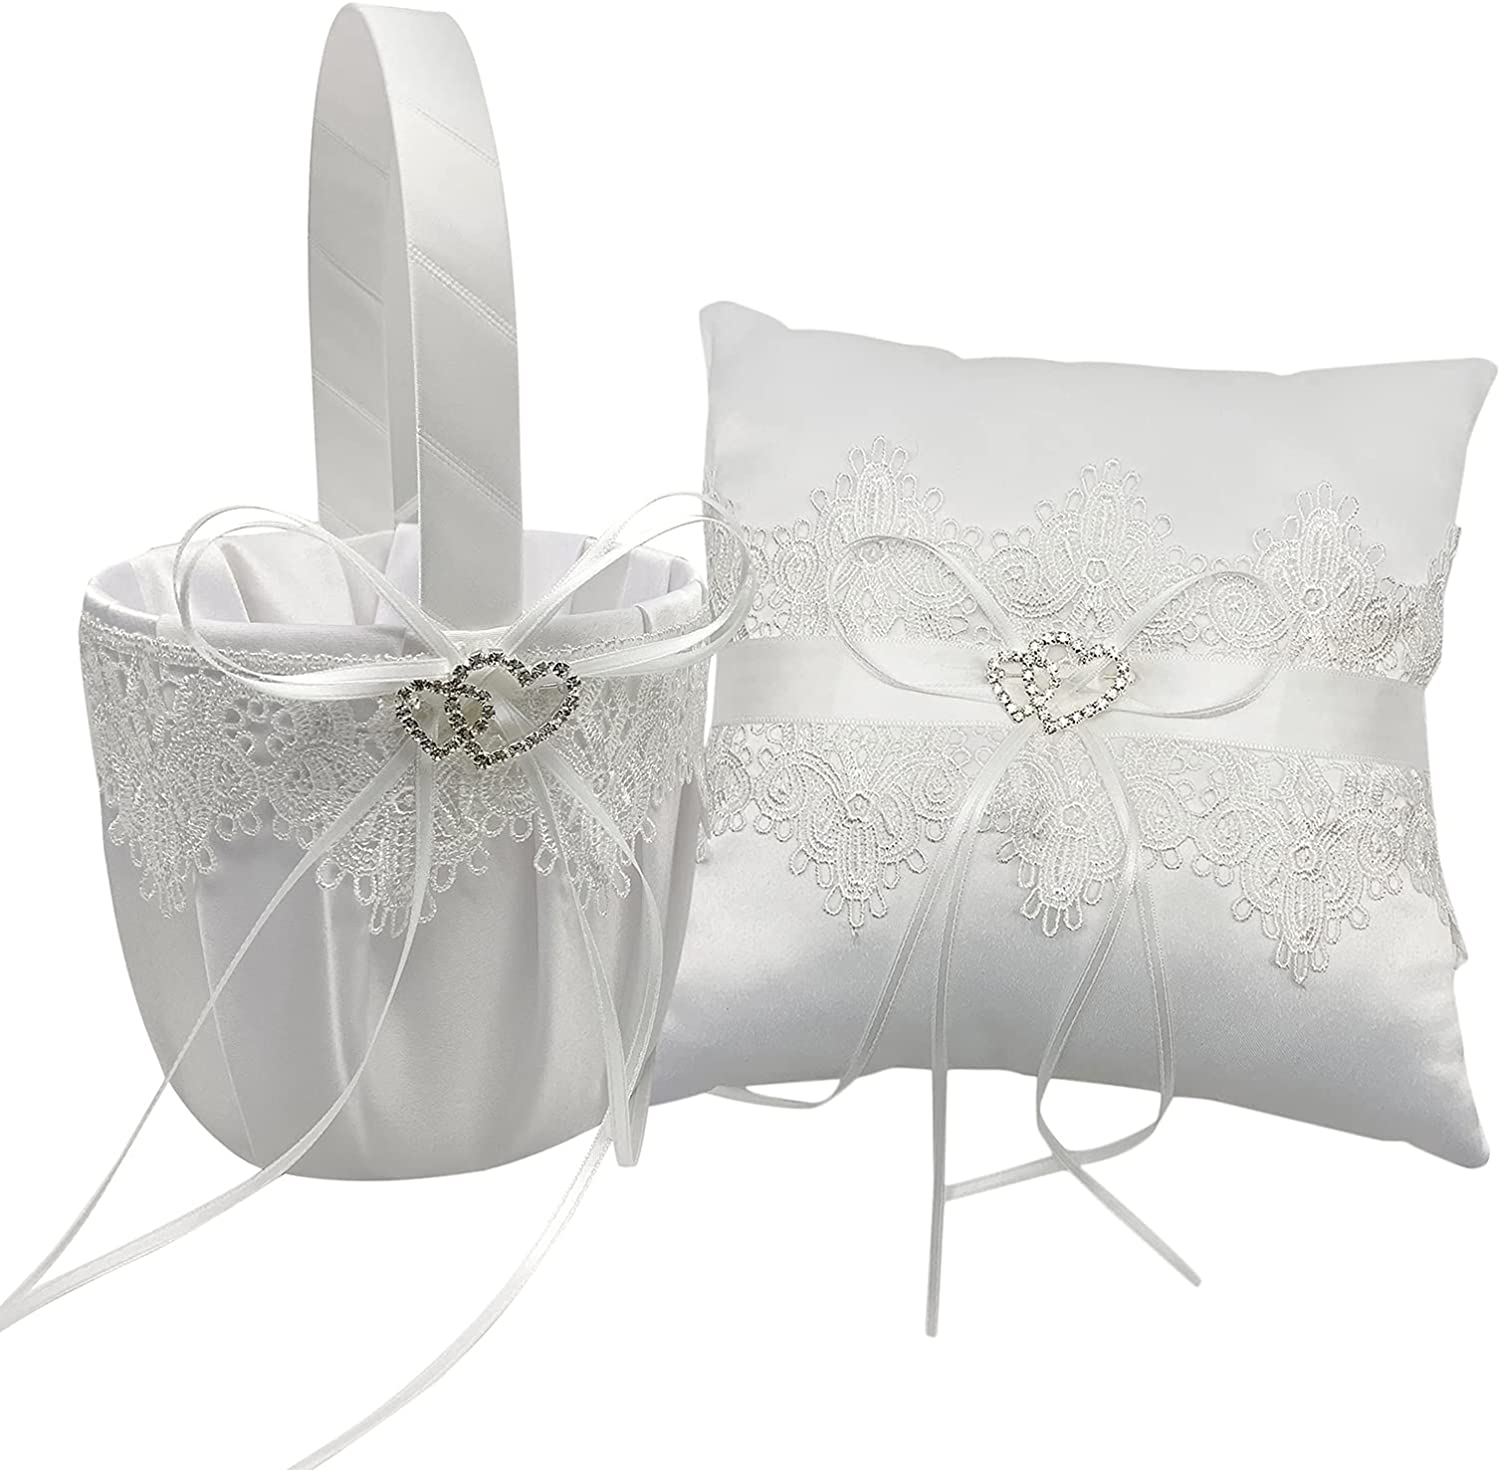 Staright Flower Basket+Wedding Ring Bearer Pillow Double Heart Cute Bowknot Lace Ribbon Crystal Pearl Decor for Wedding Party Romantic